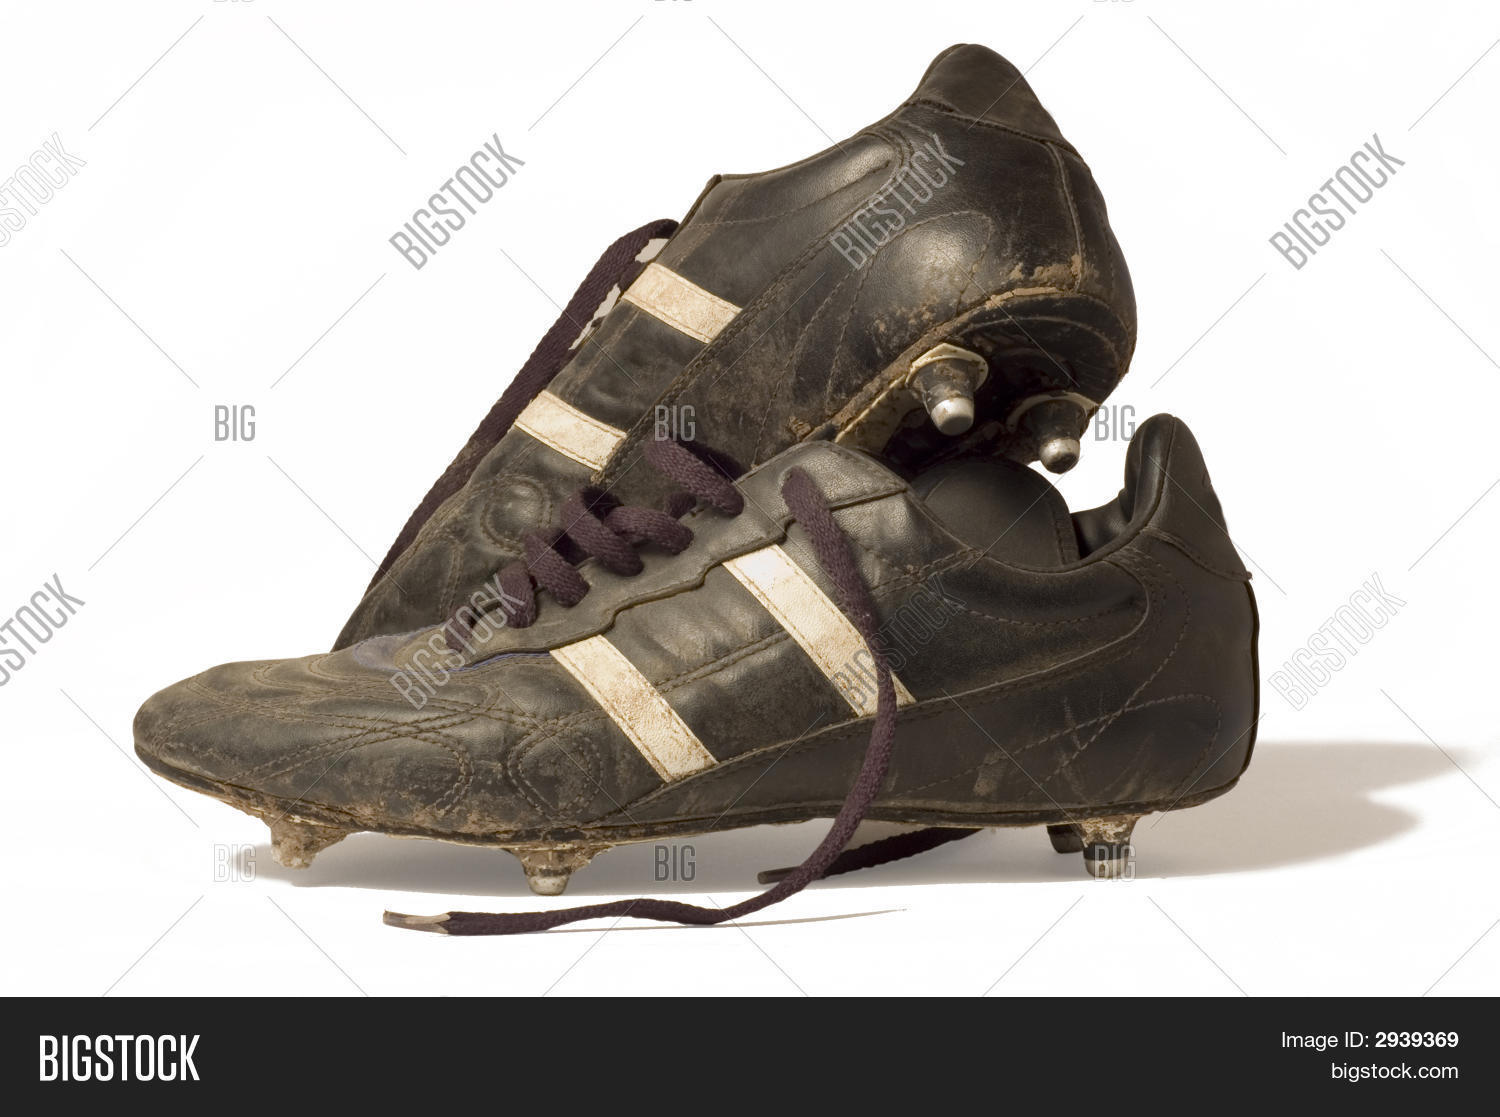 0abf479b7 A pair of old football boots showing signs of good use and age